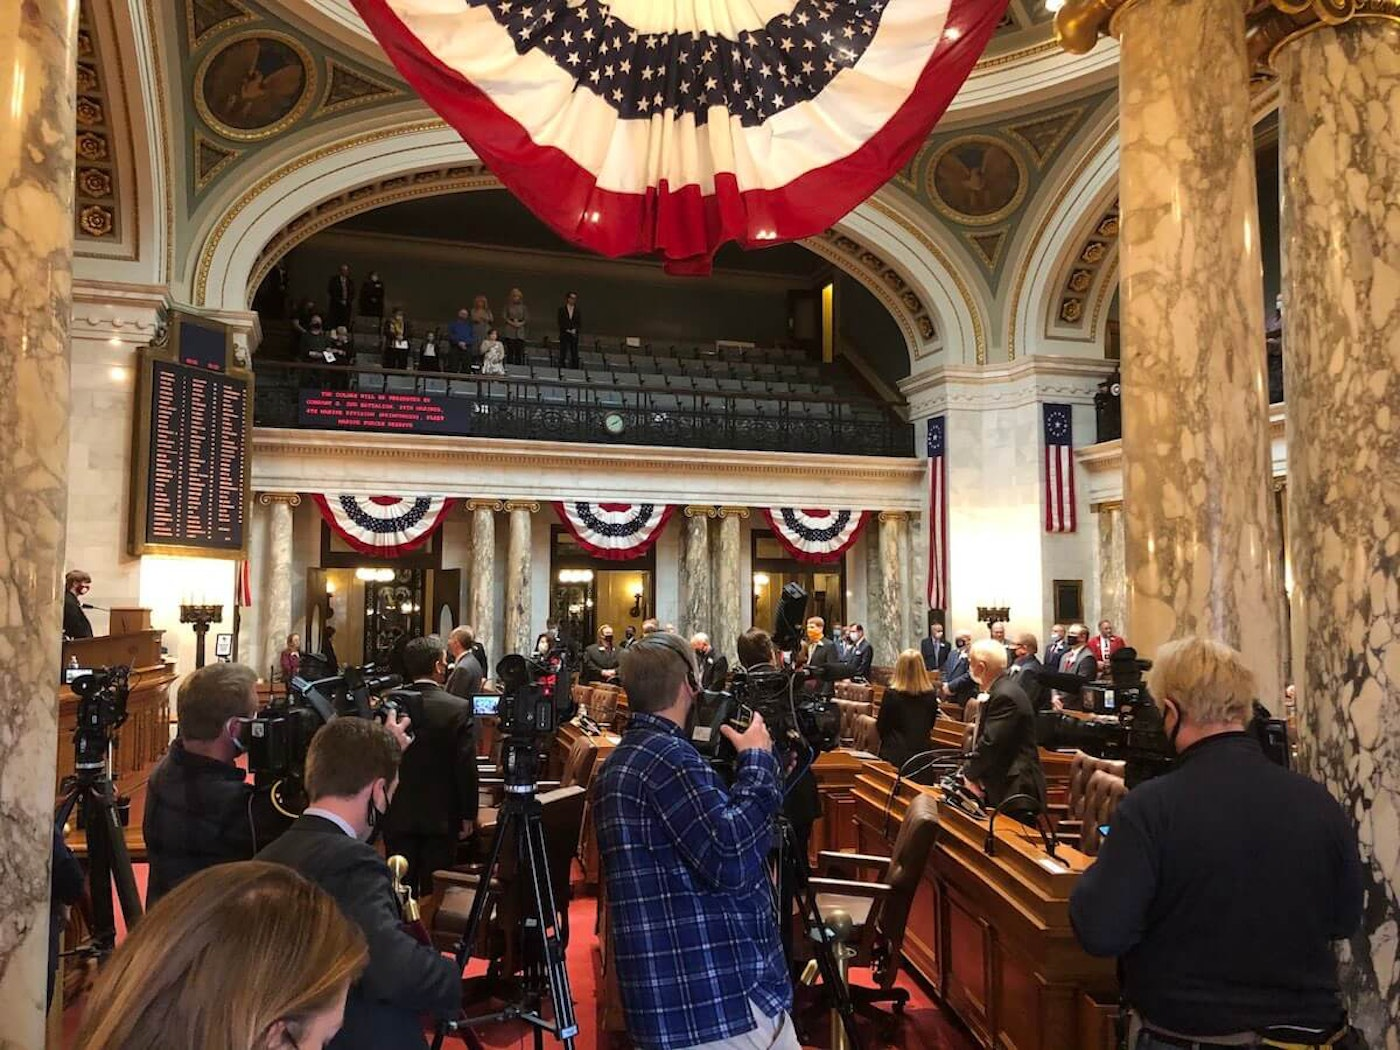 View From the Press Pit – Media members cover the opening day of the Wisconsin Legislature's 2021-2022 session in the Assembly chamber at the state Capitol in Madison. The gallery above, normally filled with families, friends, and staff, is sparse due to COVID-19 restrictions and Democratic members conducting their inaugurals largely online. (Photo by Jessica VanEgeren)